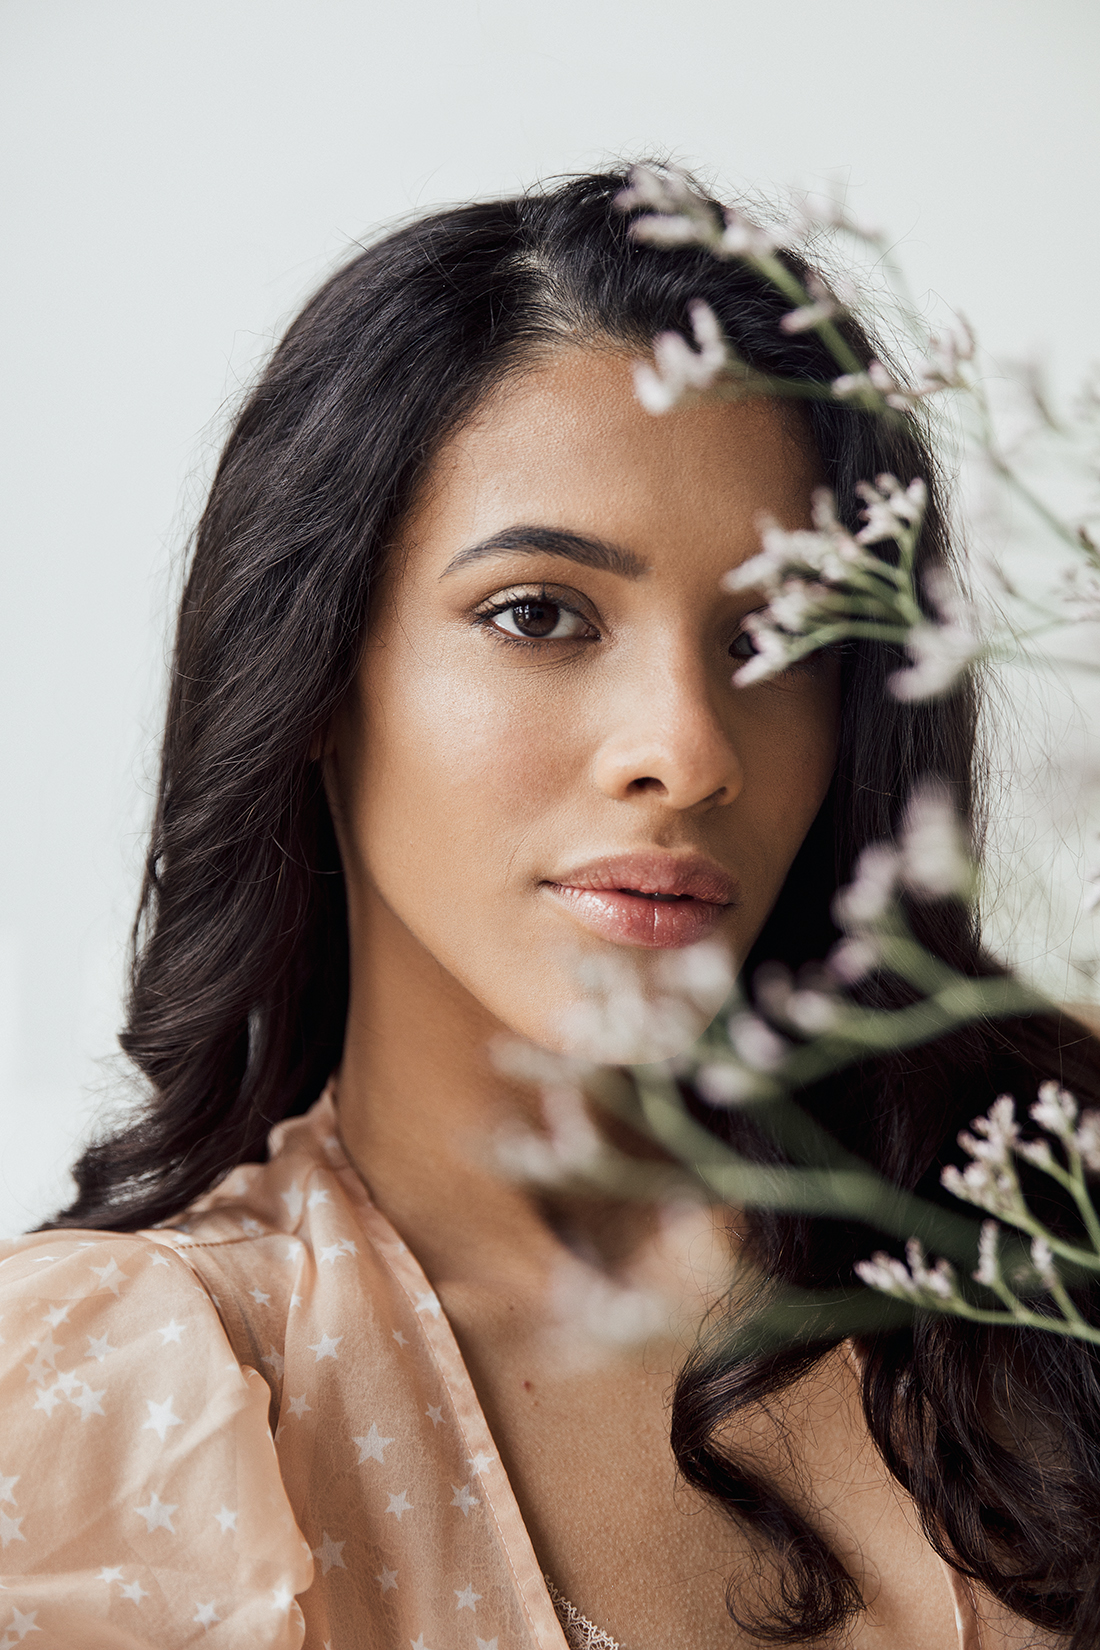 Soft dreamy portrait close up with flowers of Beatriz @ PRM agency by Ailera Stone